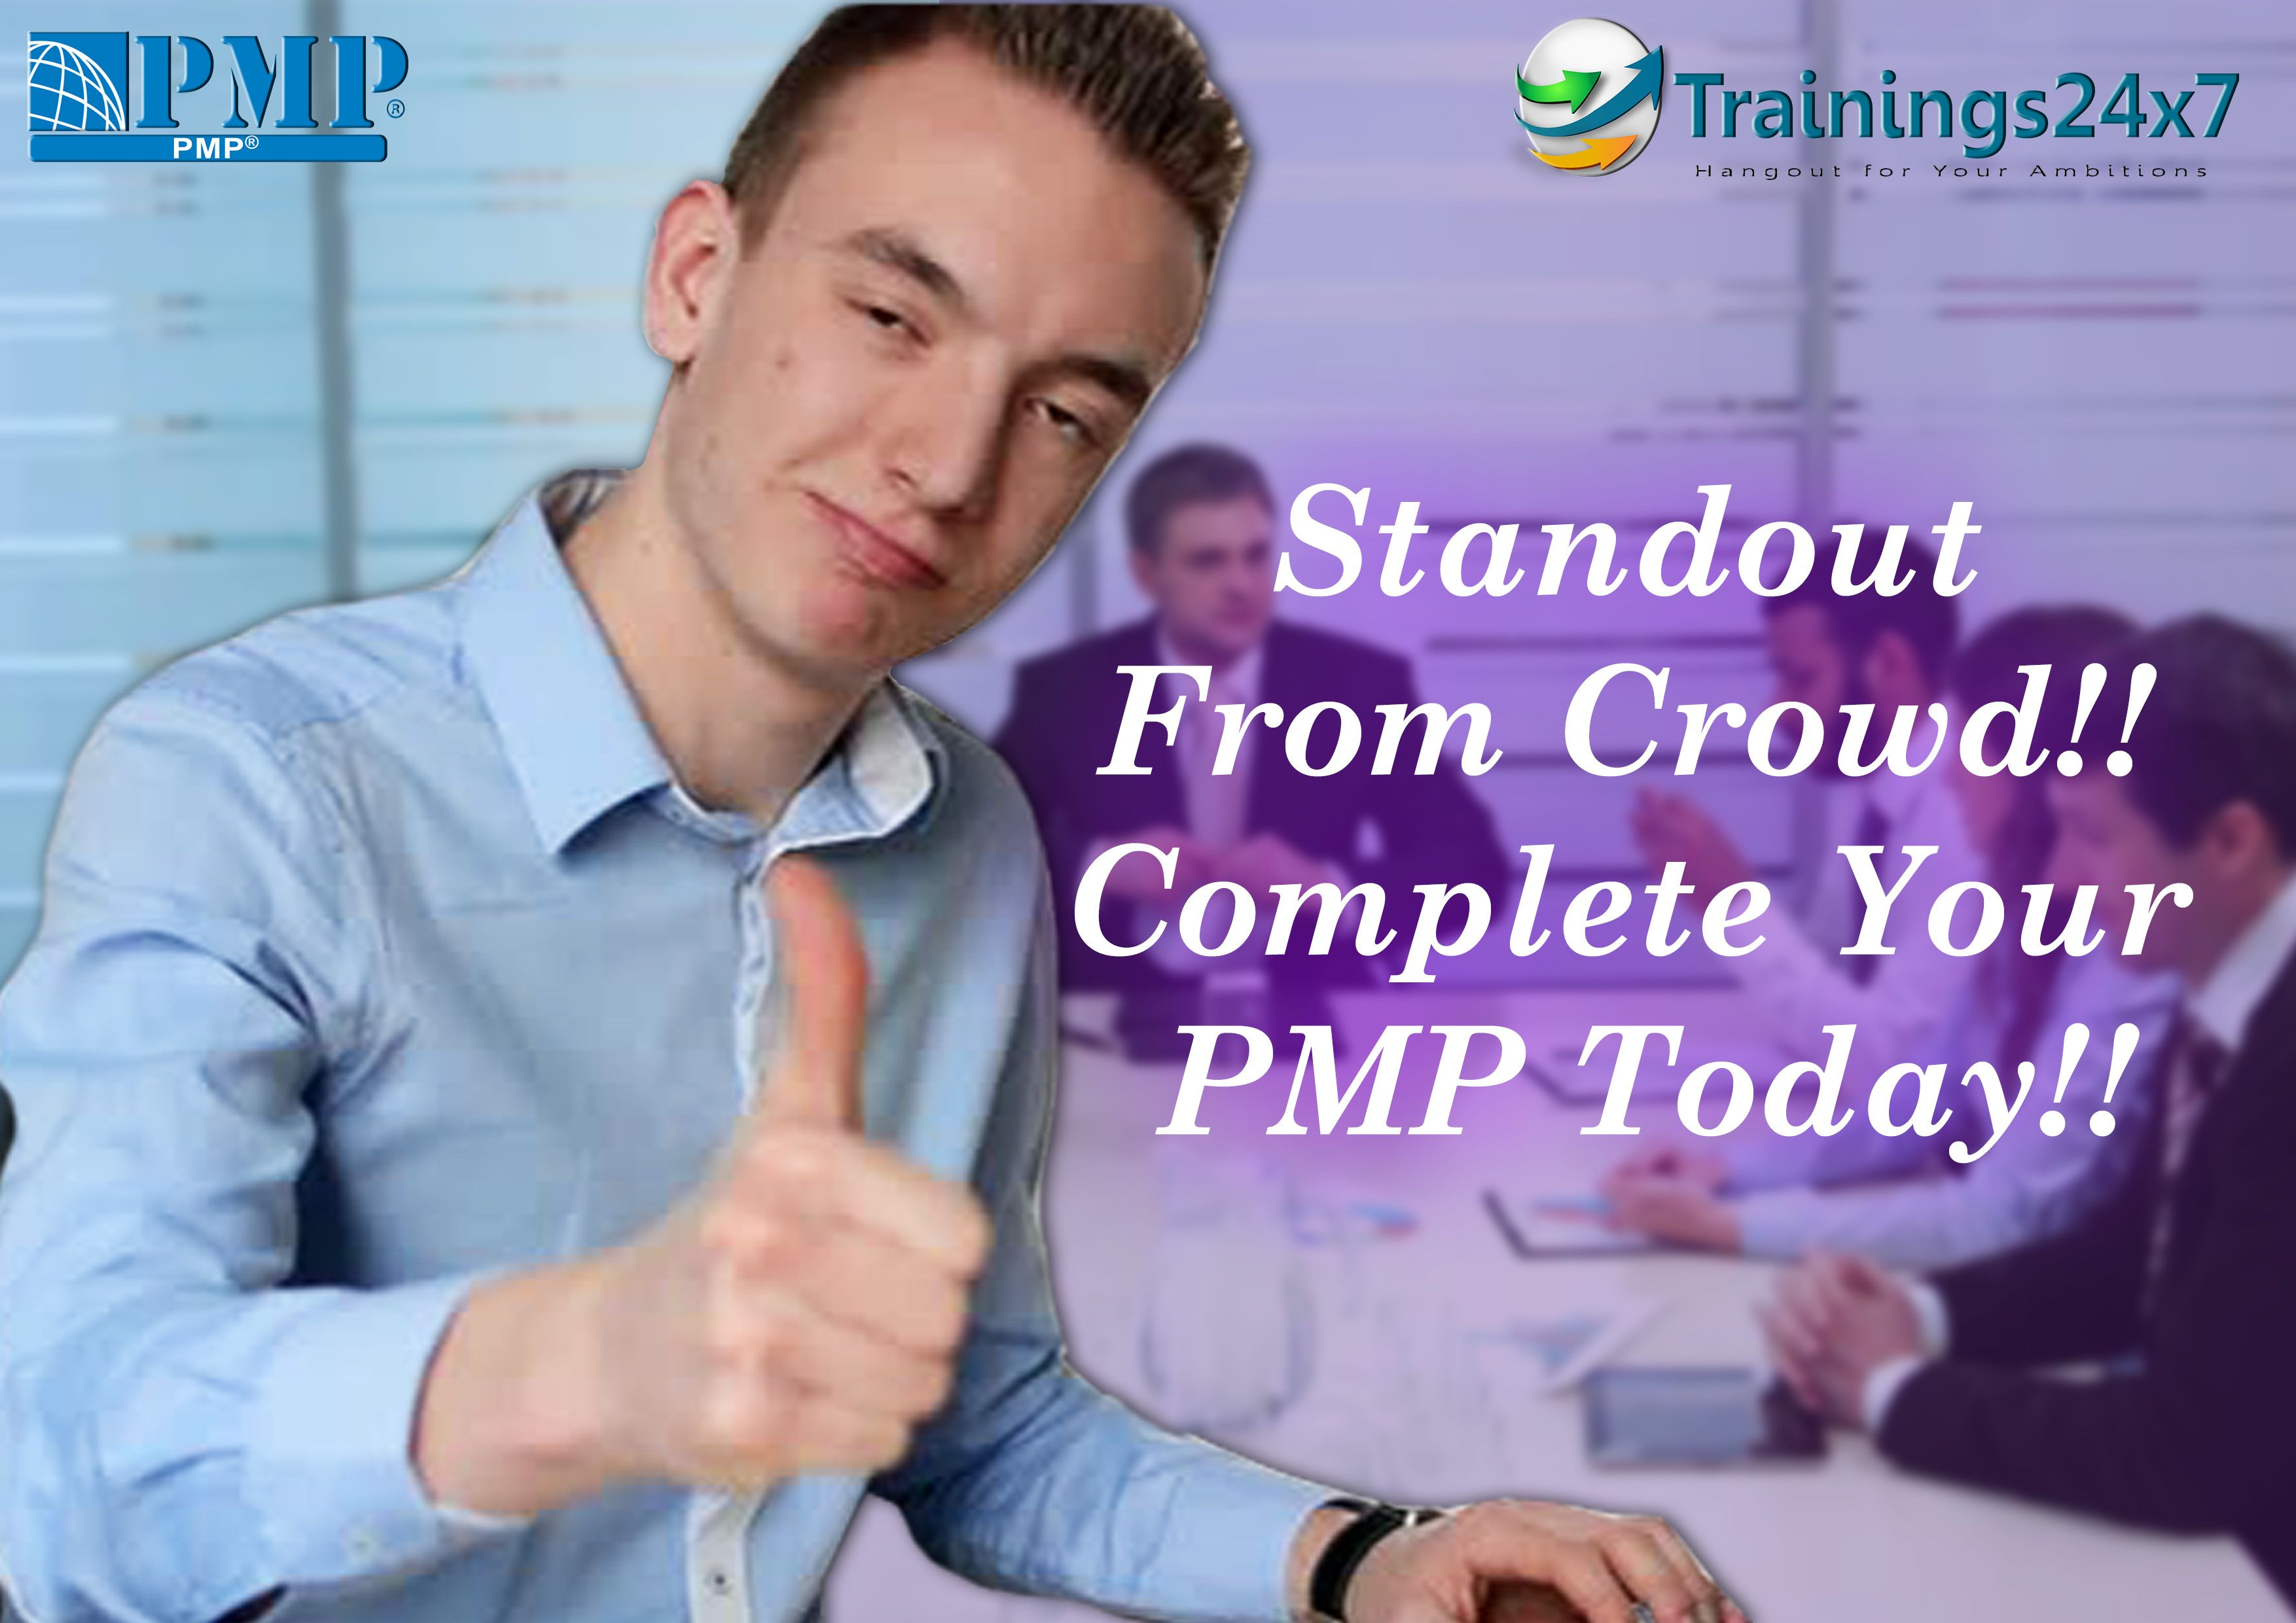 Pmp Stands For Project Management Professional Certification Exam